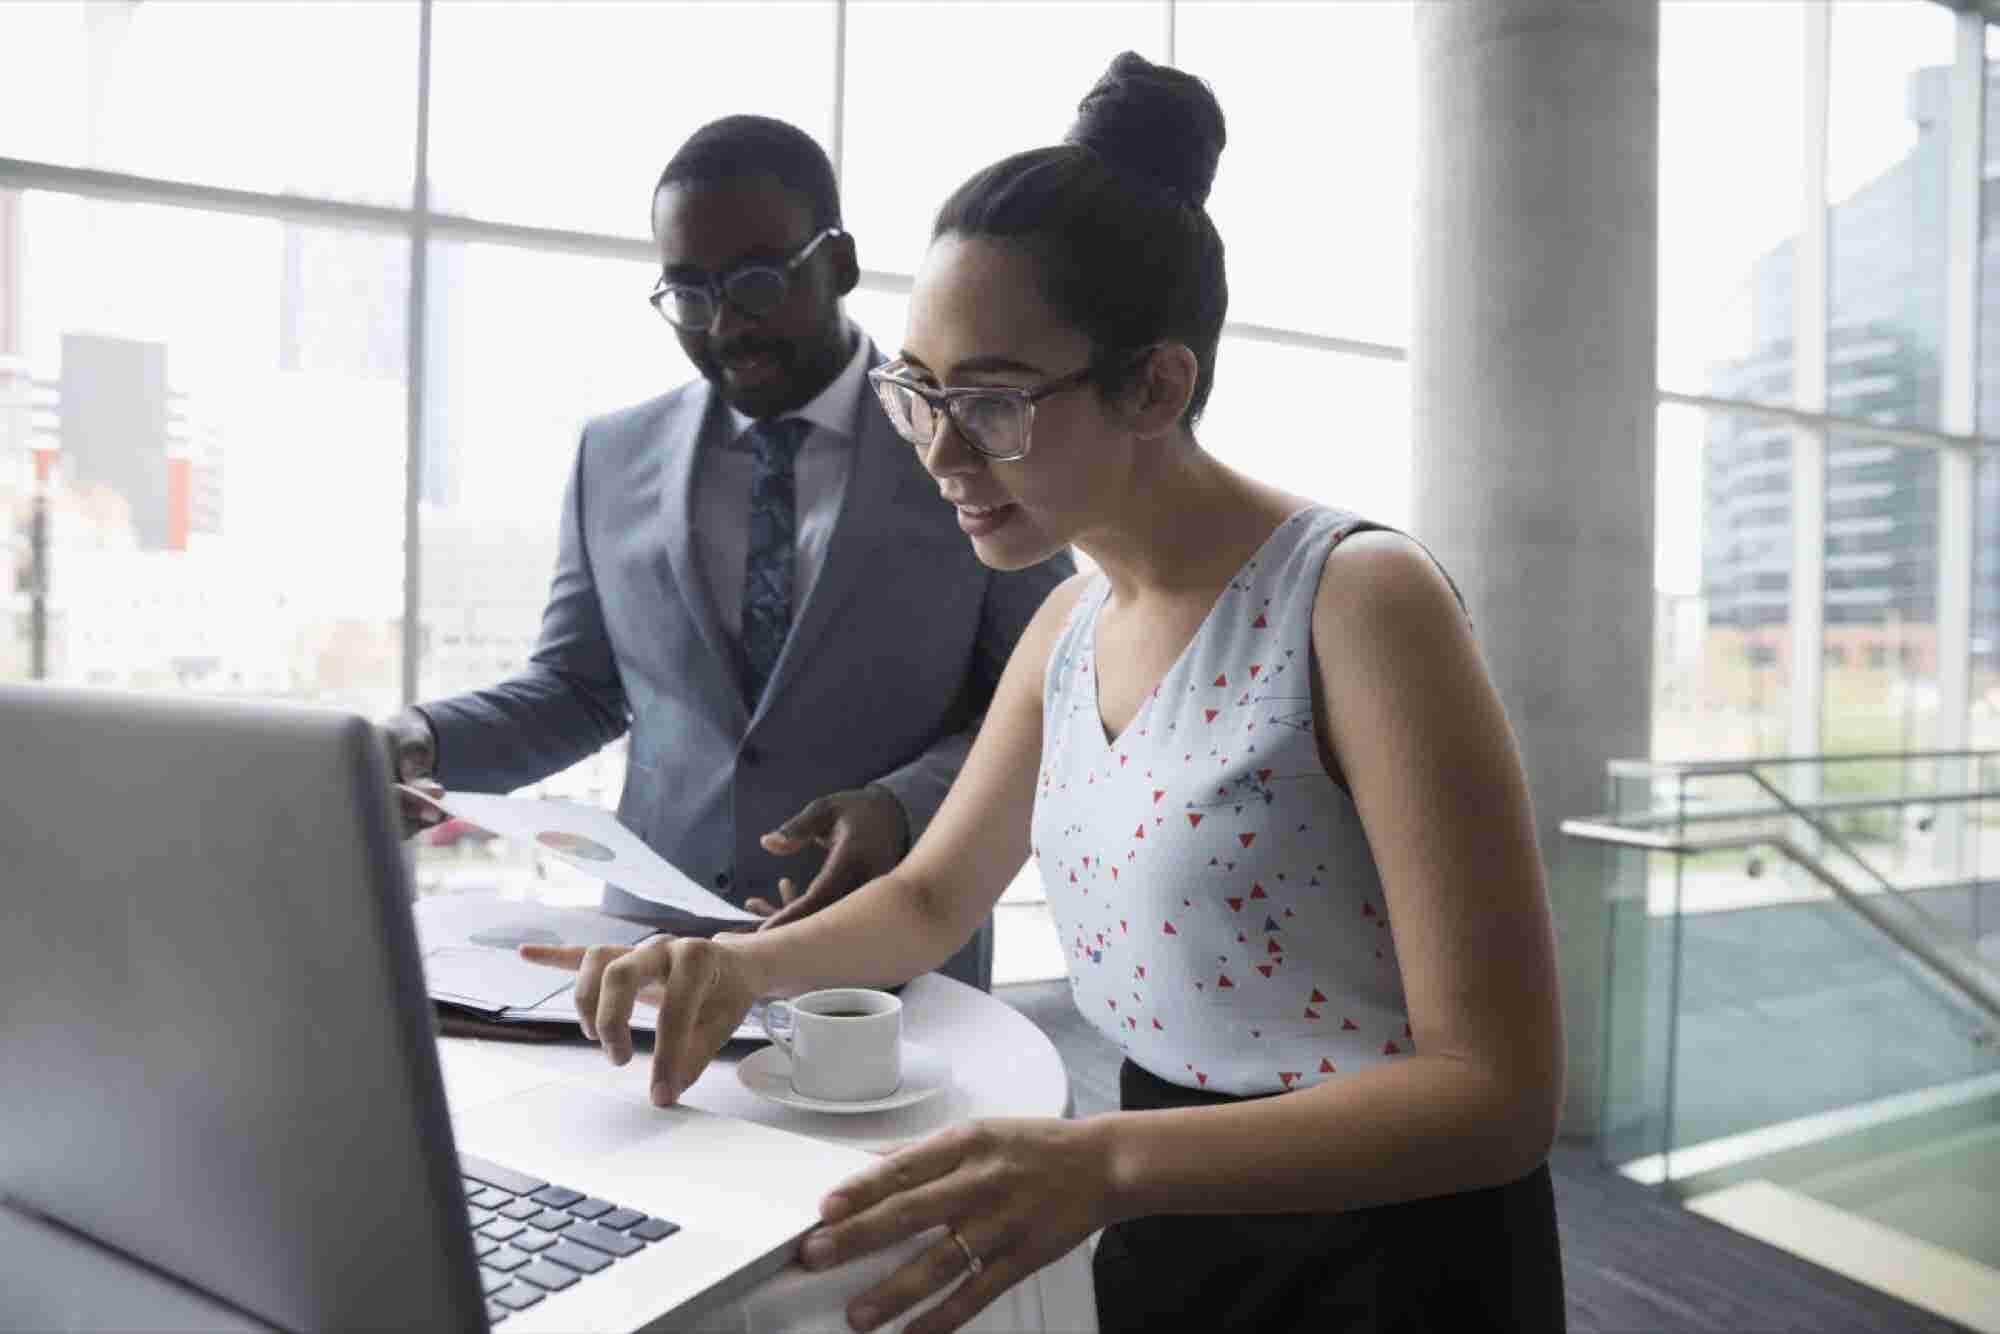 New Study Finds 5 Key Differences in How Male and Female Founders Raise Capital